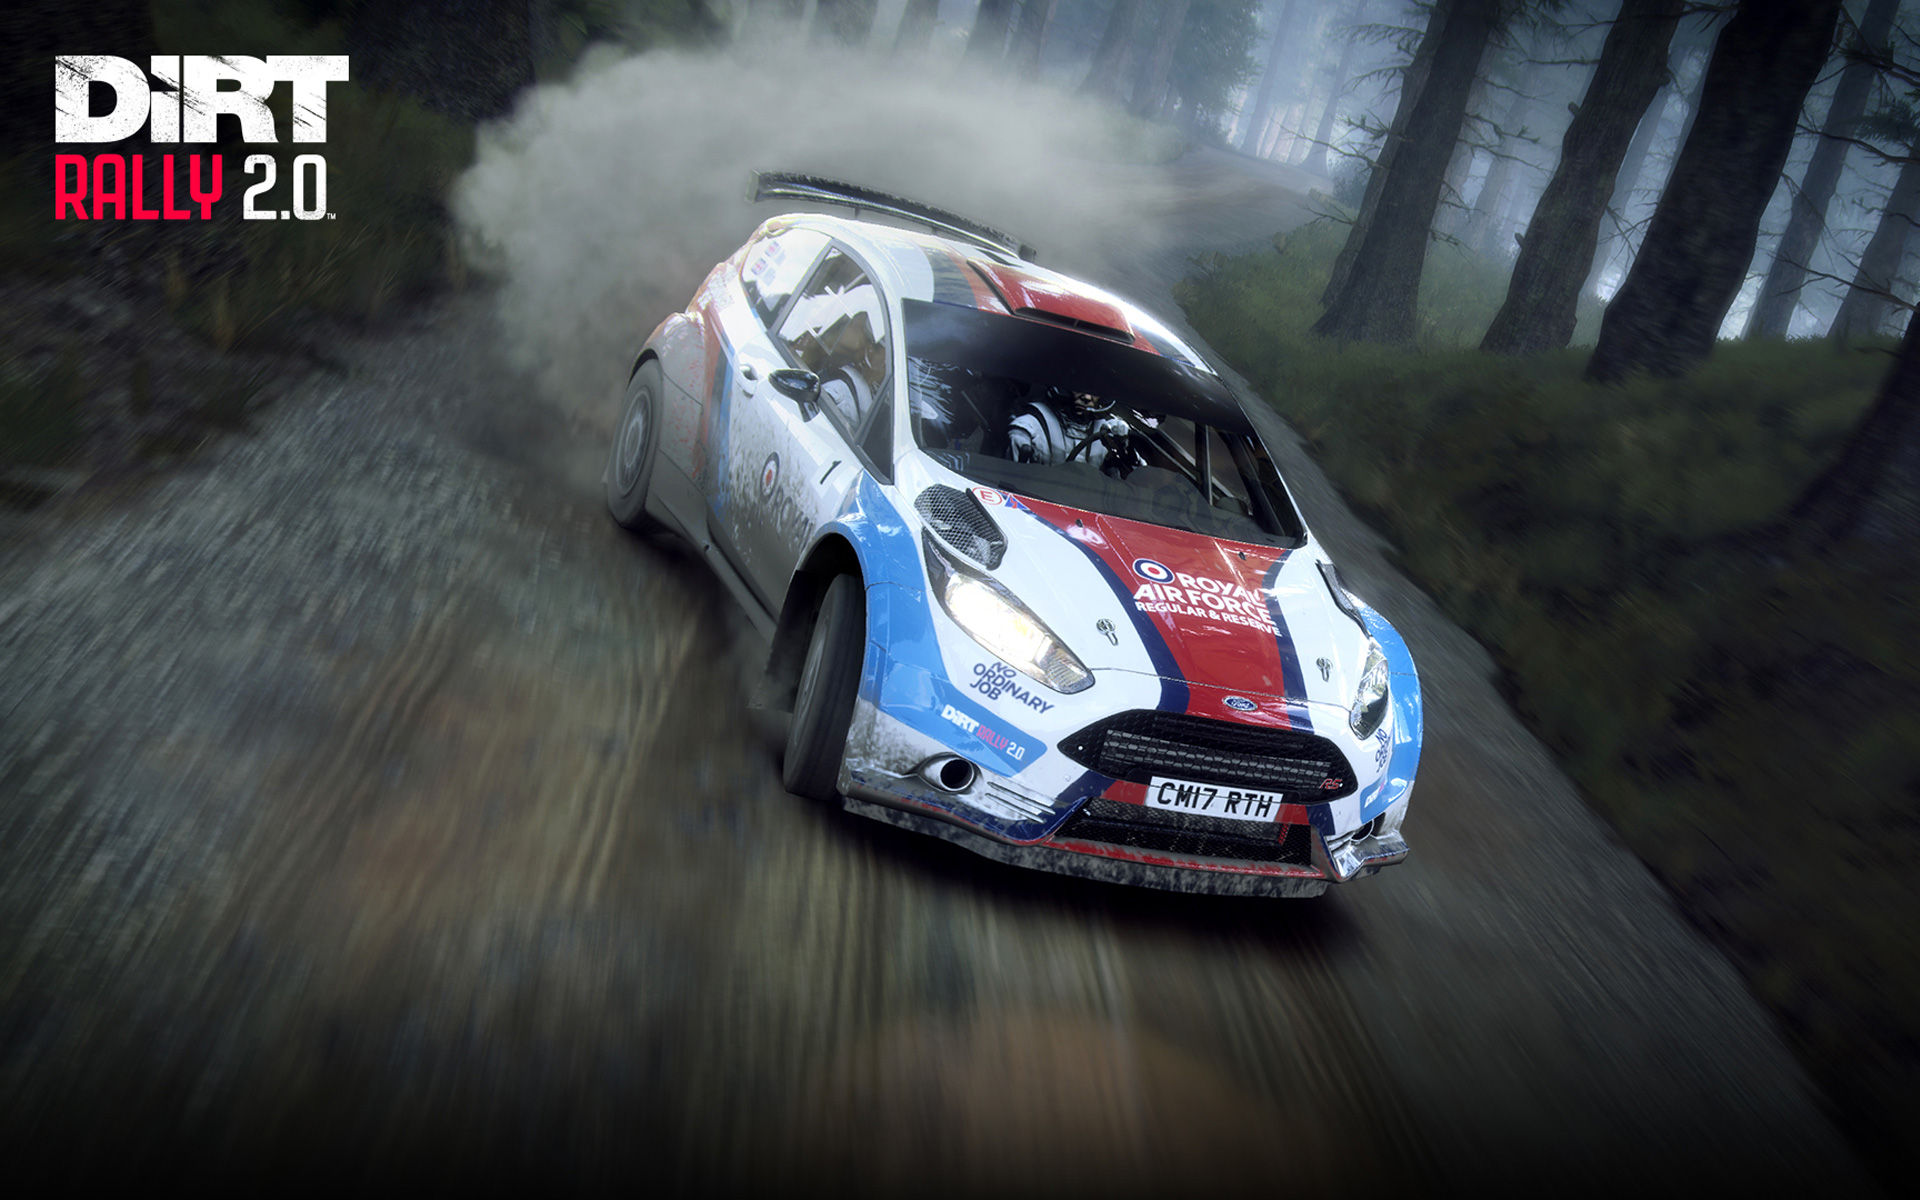 Free Dirt Rally 2.0 Wallpaper in 1920x1200